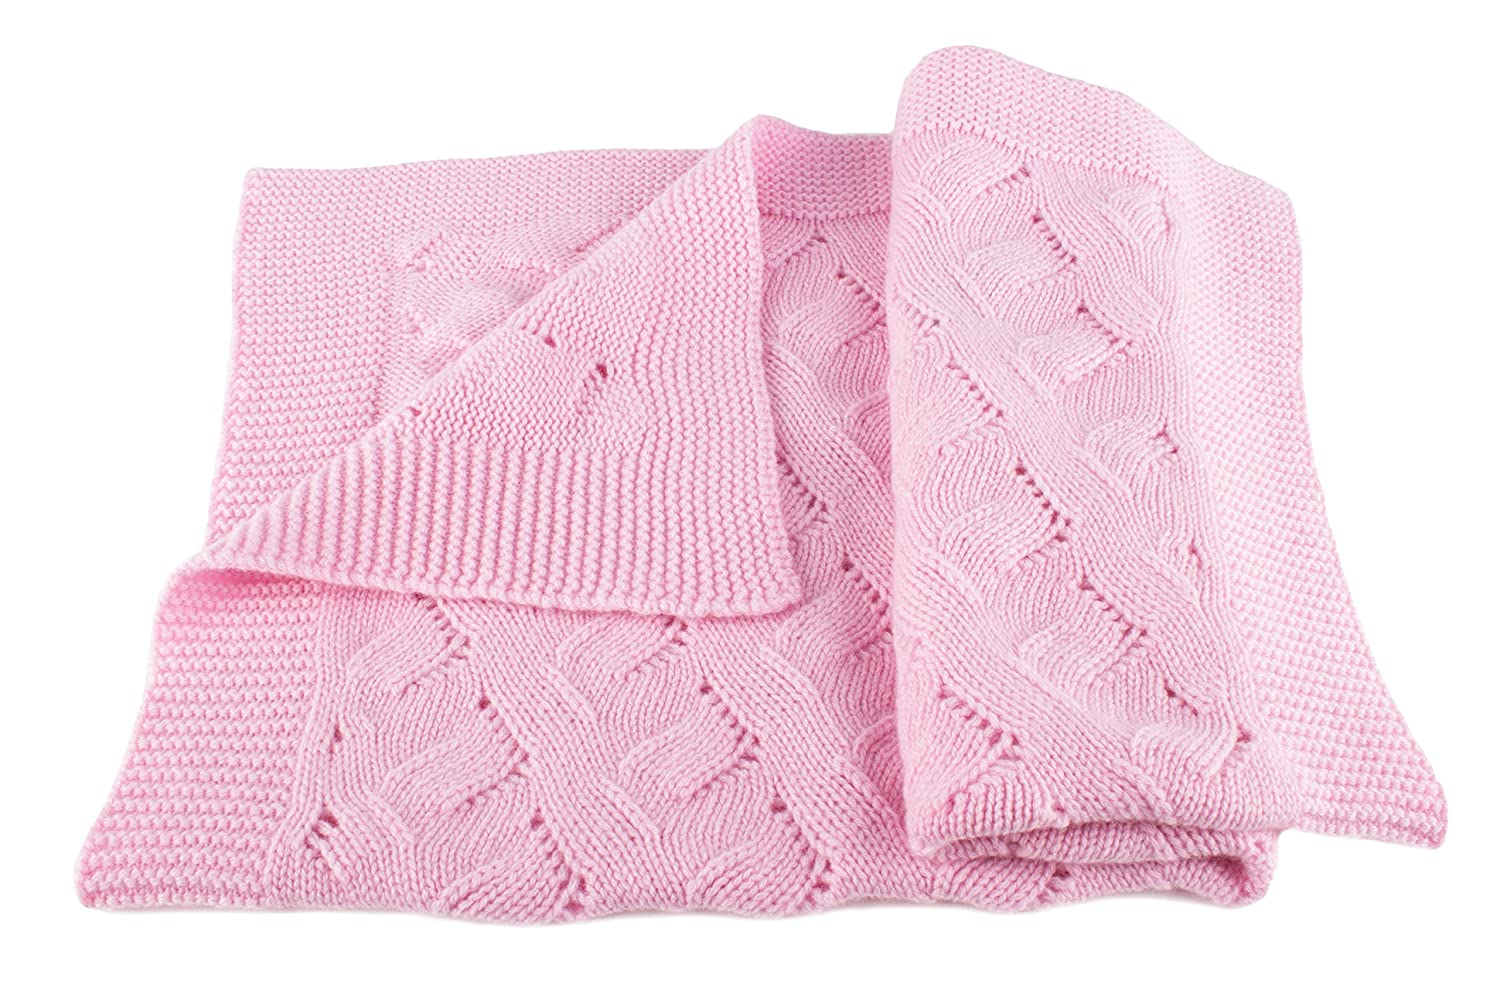 Girls Luxury 100% Cashmere Baby Blanket - 'Baby Pink' - hand made in Scotland by Love Cashmere - RRP $300 by Love Cashmere   B00TU2Y3W0